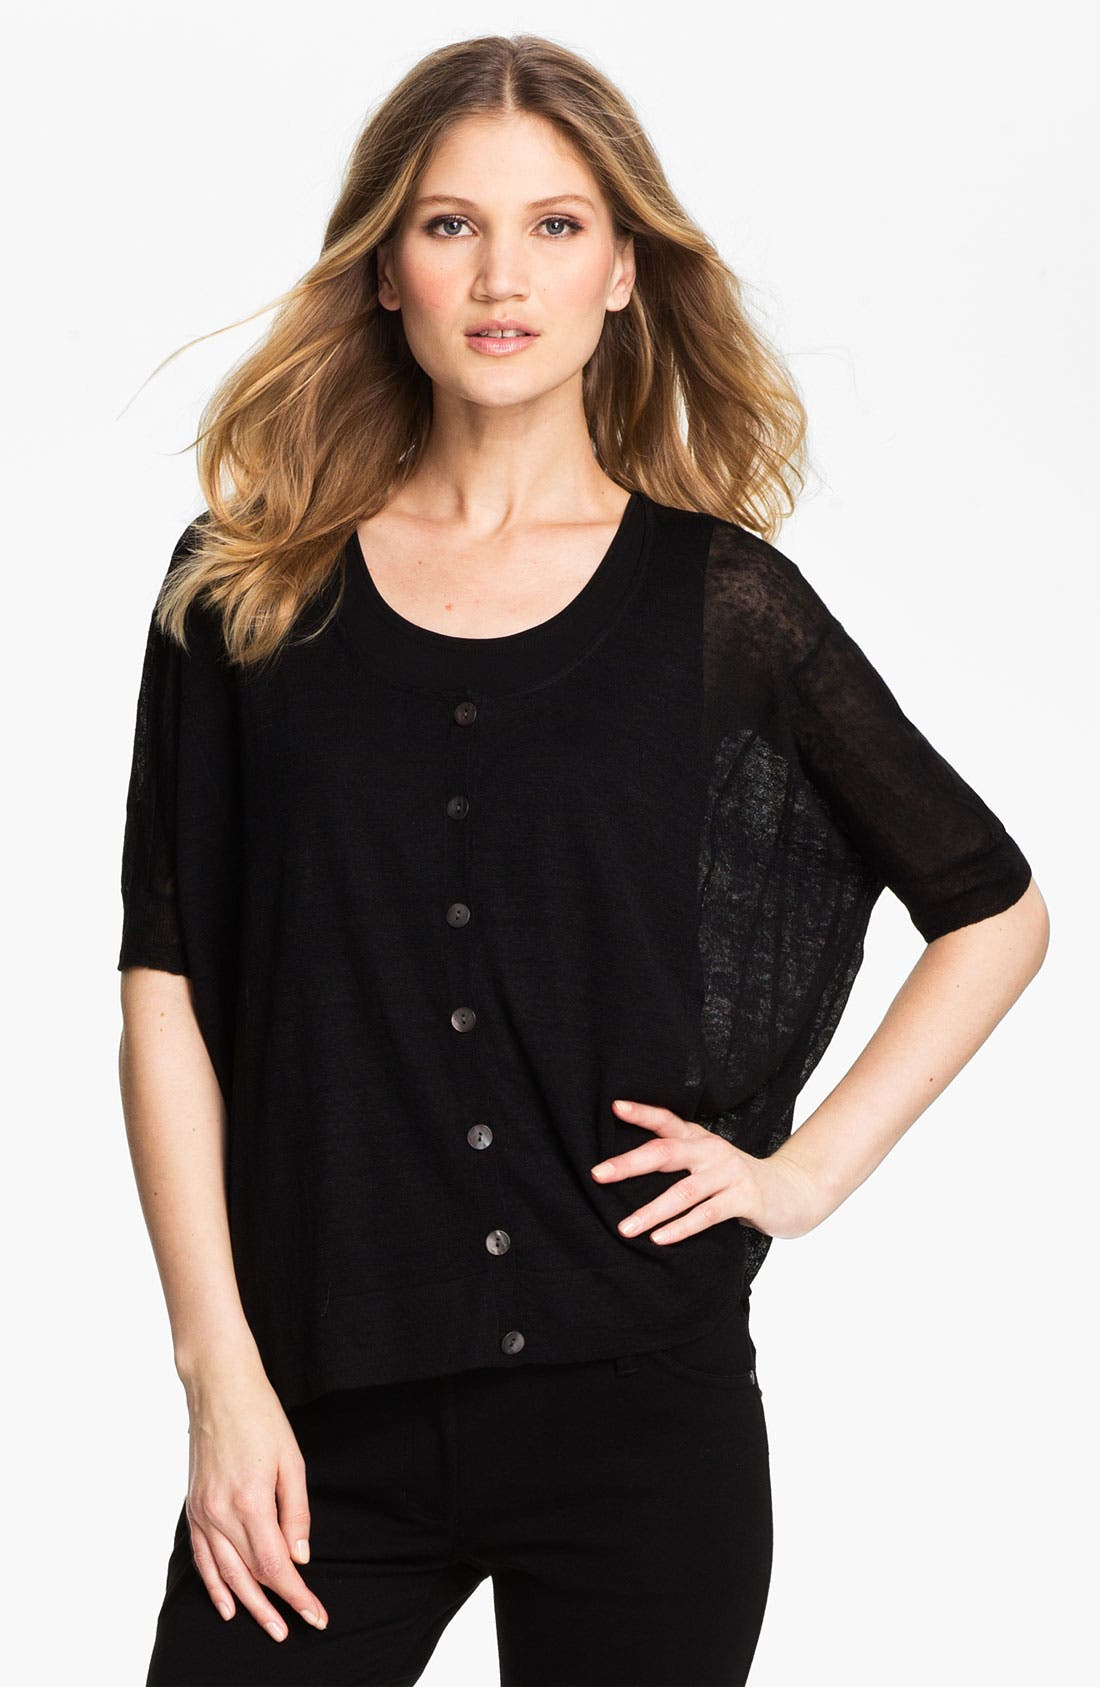 Alternate Image 1 Selected - Eileen Fisher Sheer Hemp Blend Cardigan (Petite)